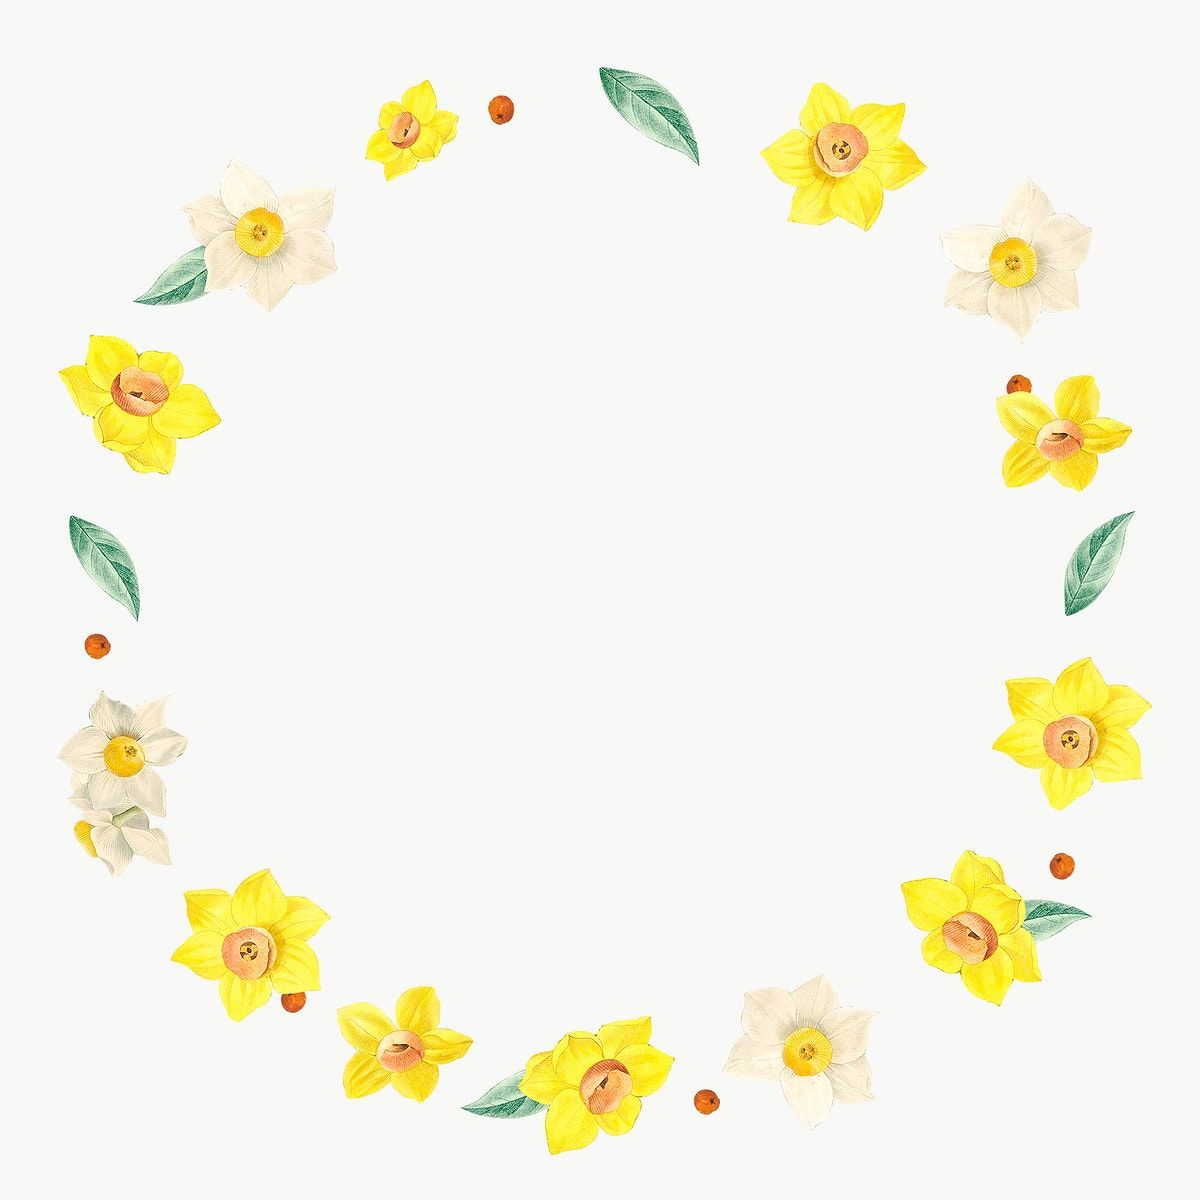 Round Mixed Flowers Frame Patterned Transparent Png Premium Image By Rawpixel Com Kappy Kappy In 2021 Flower Illustration Flower Frame Flowers